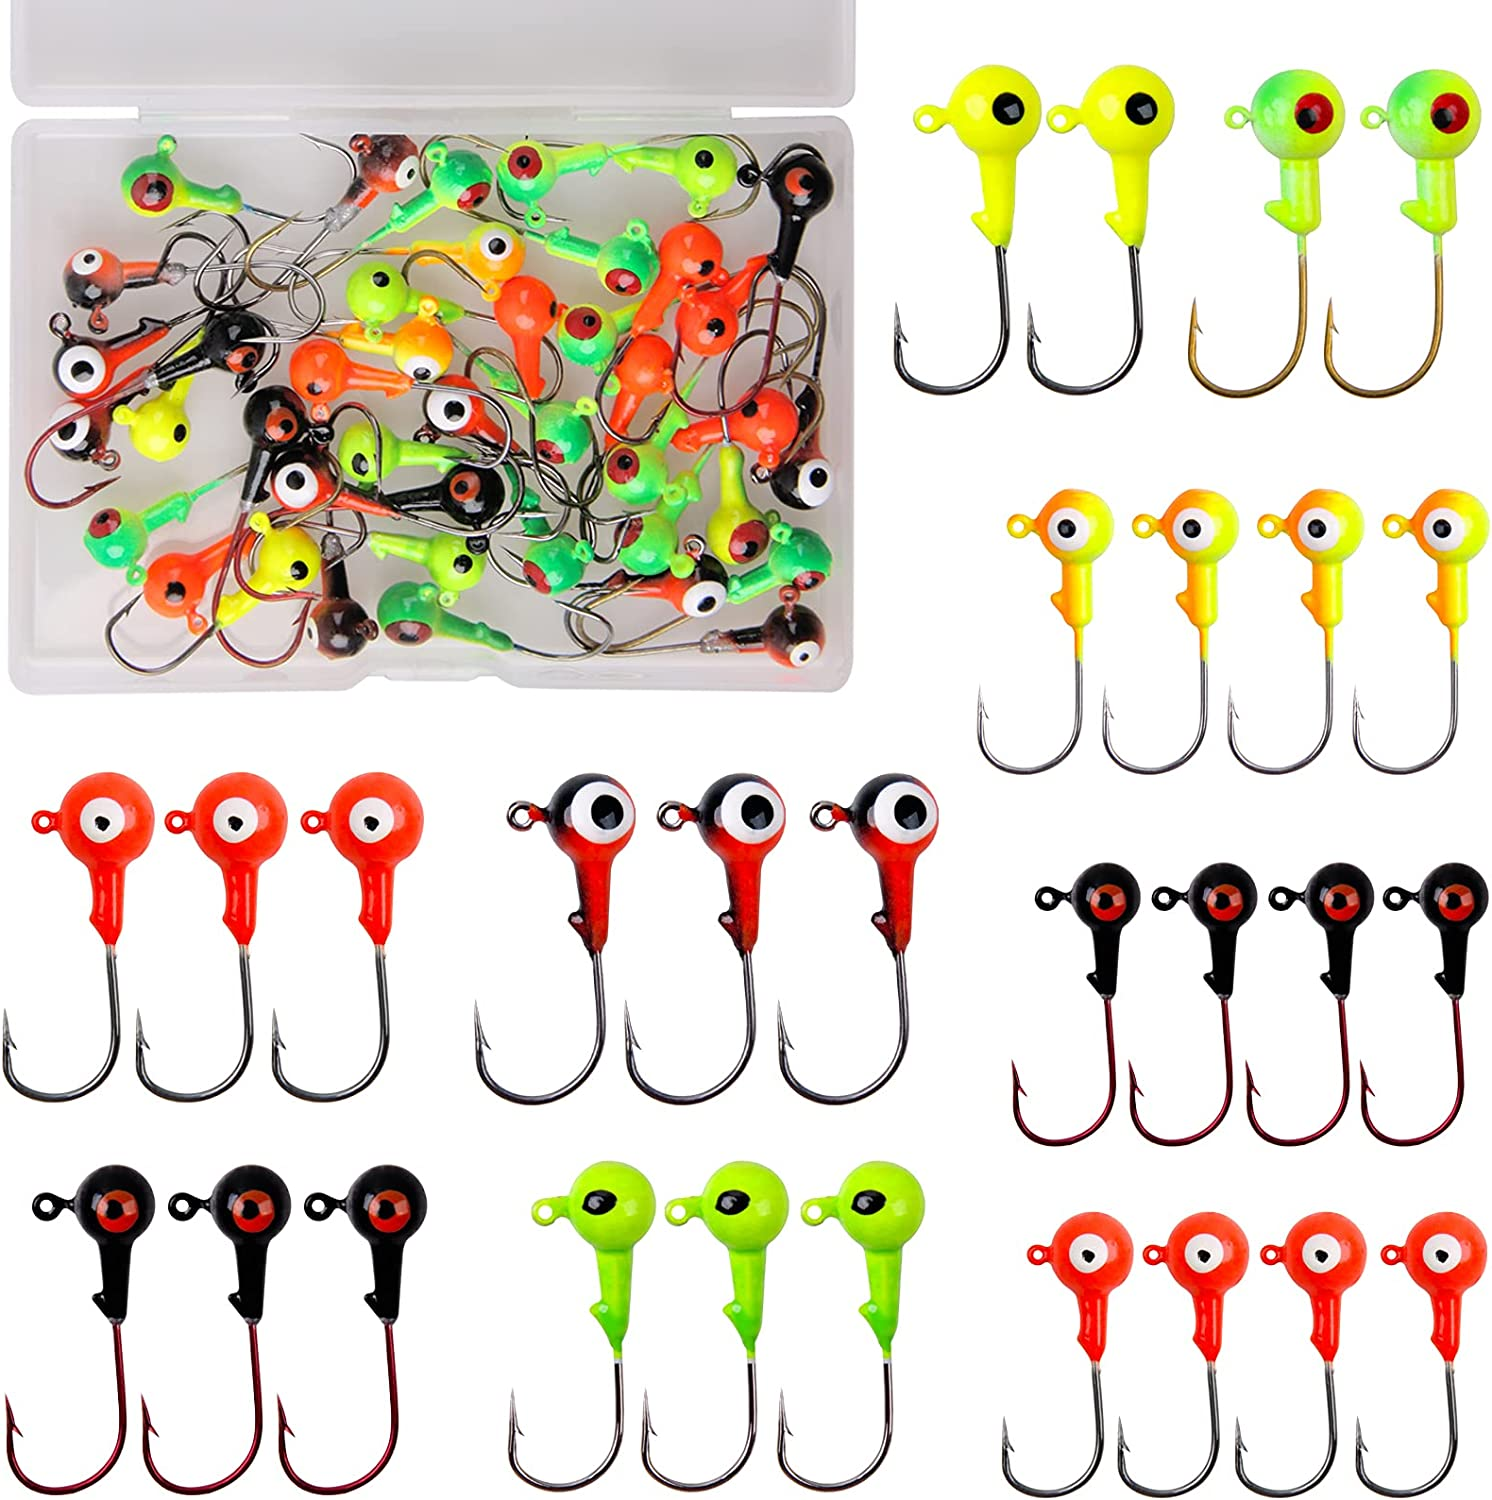 Fishing Jig Heads Saltwater Round Rare Painted Ball OFFer Crappie